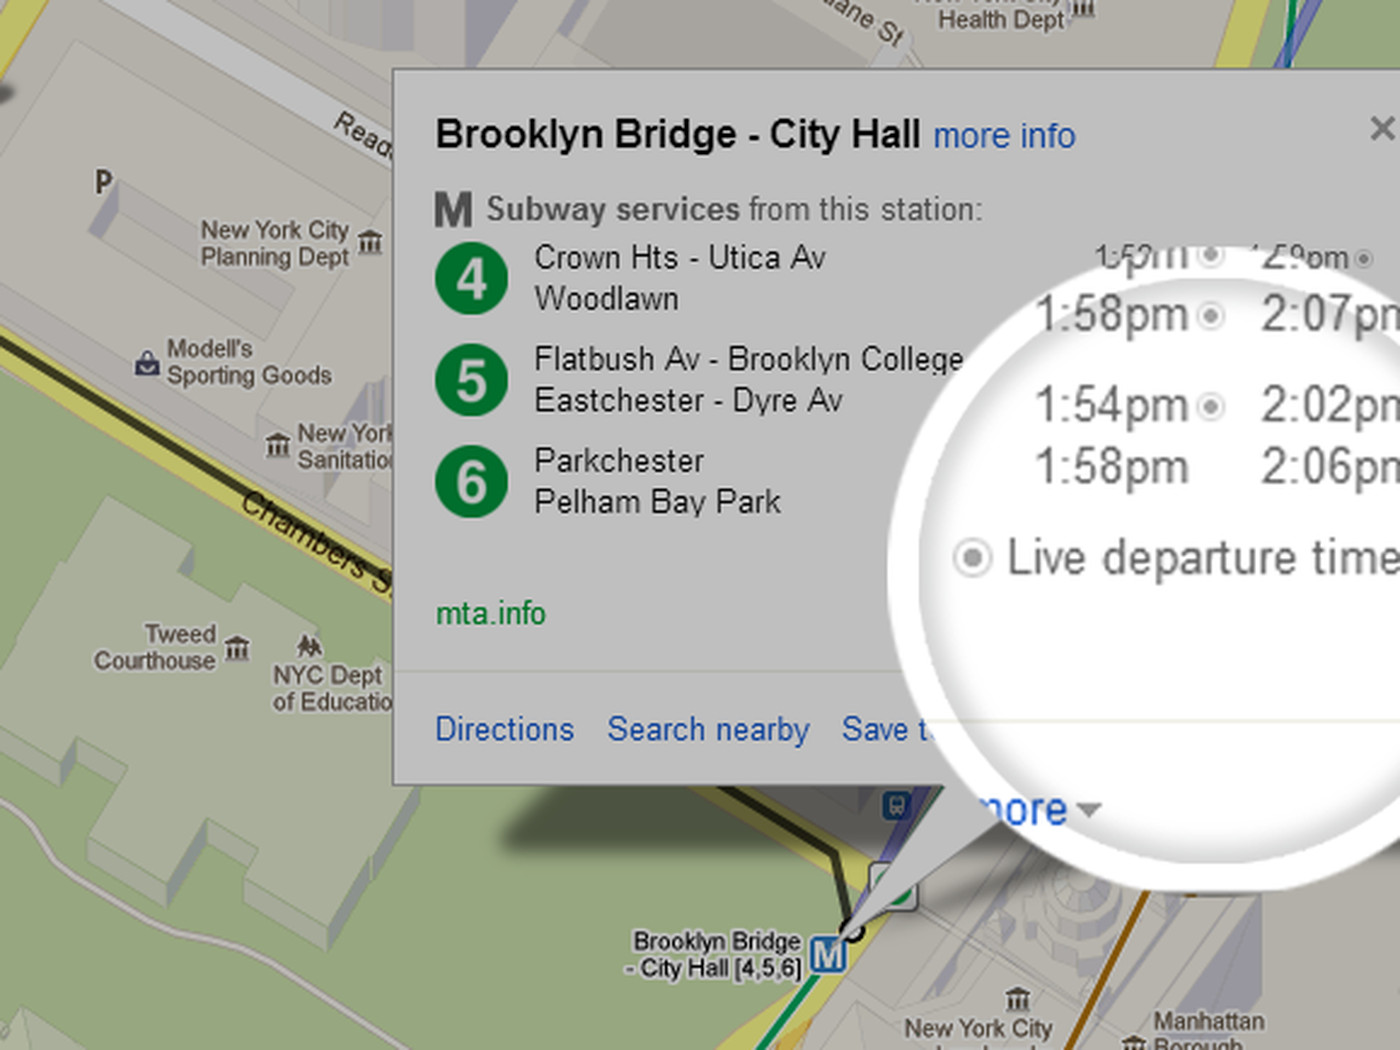 Google brings real-time NYC subway schedule data to Google Maps ...